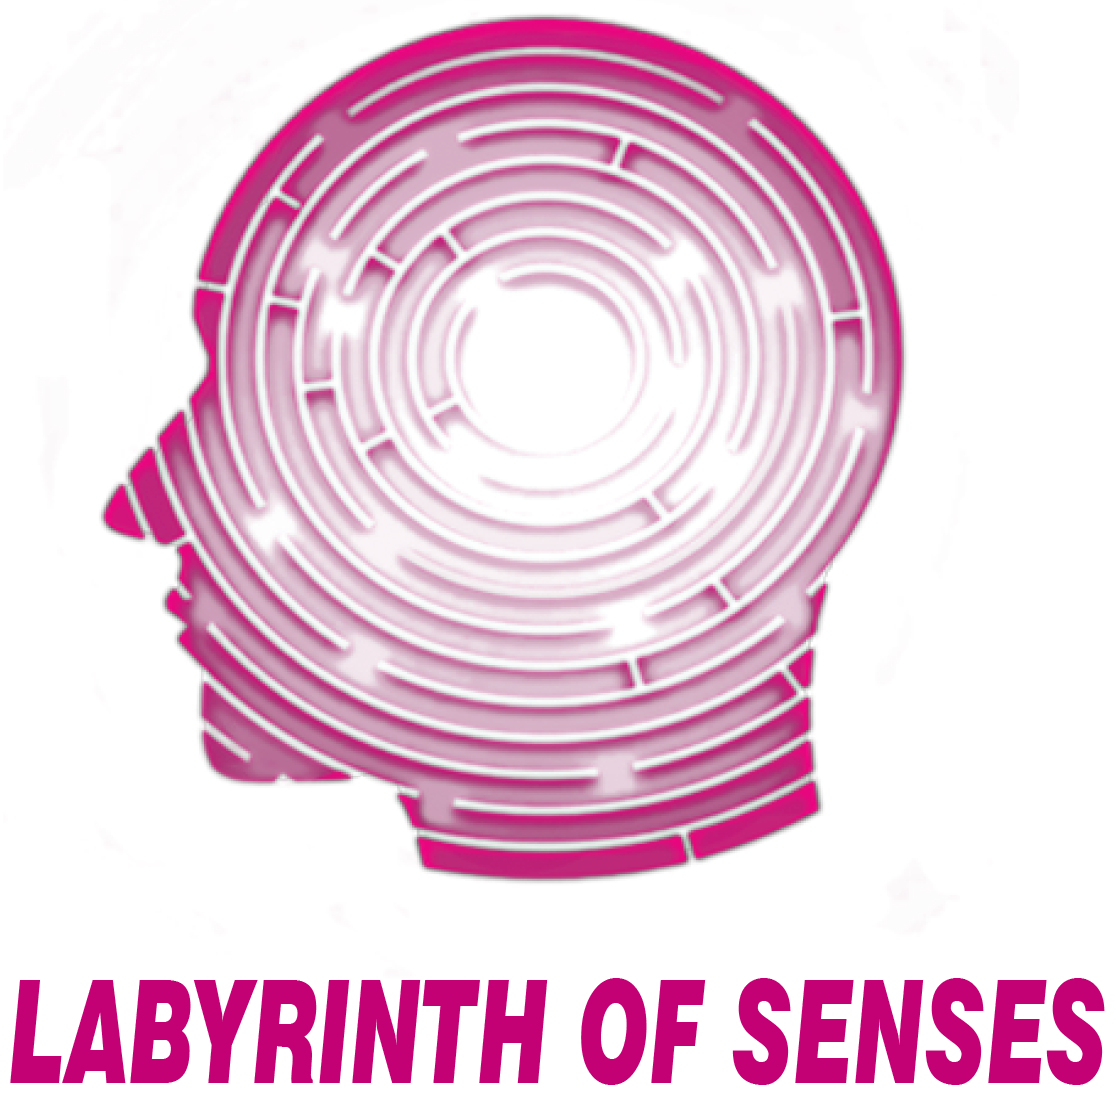 Labyrinth of Senses